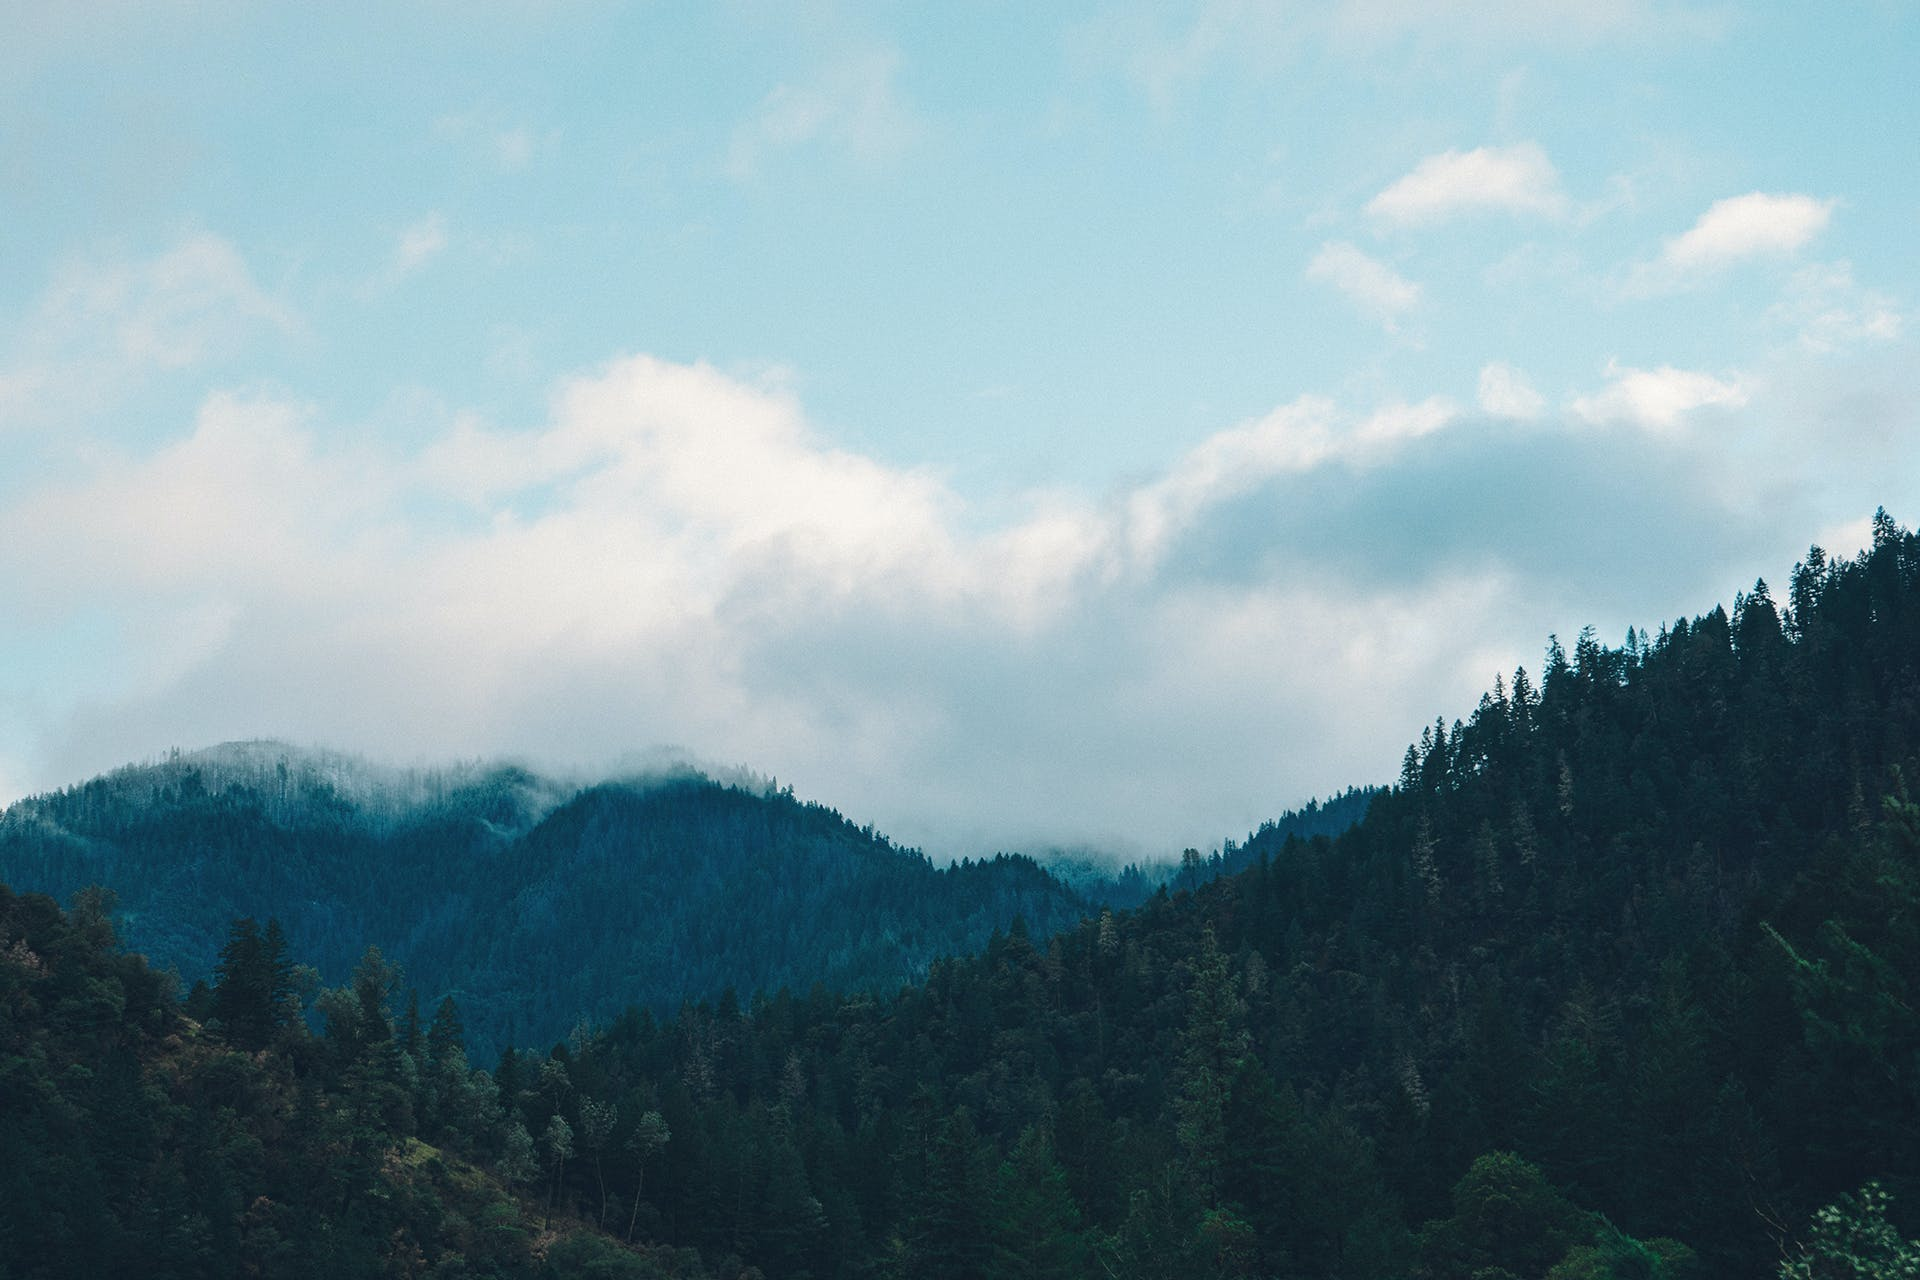 Free stock photo of forest, trees, firs